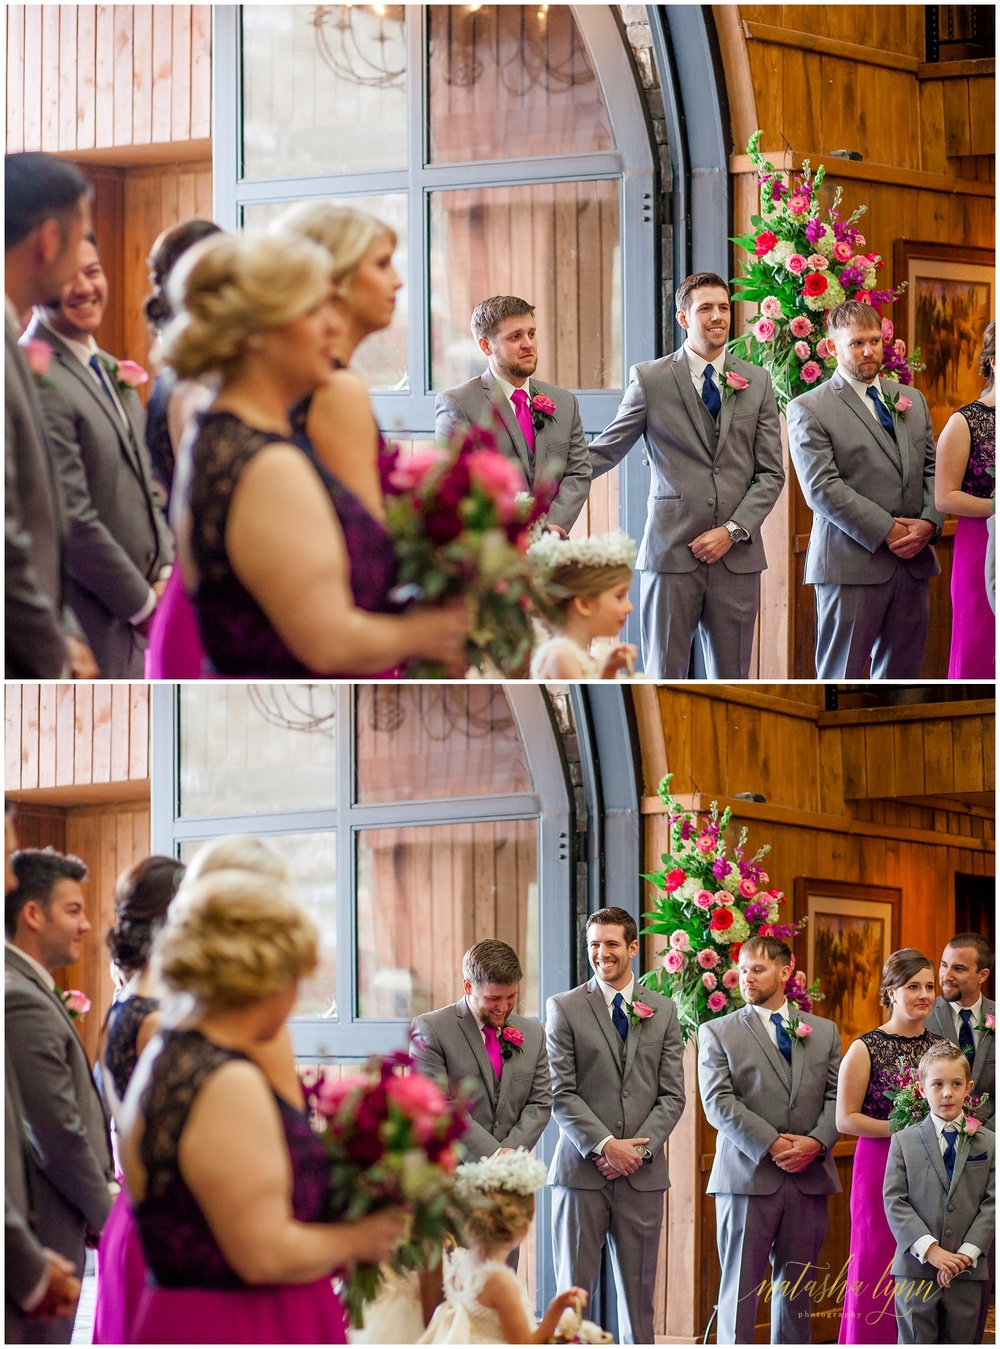 High+Point+Wedding+Photographer+grooms+face.jpg